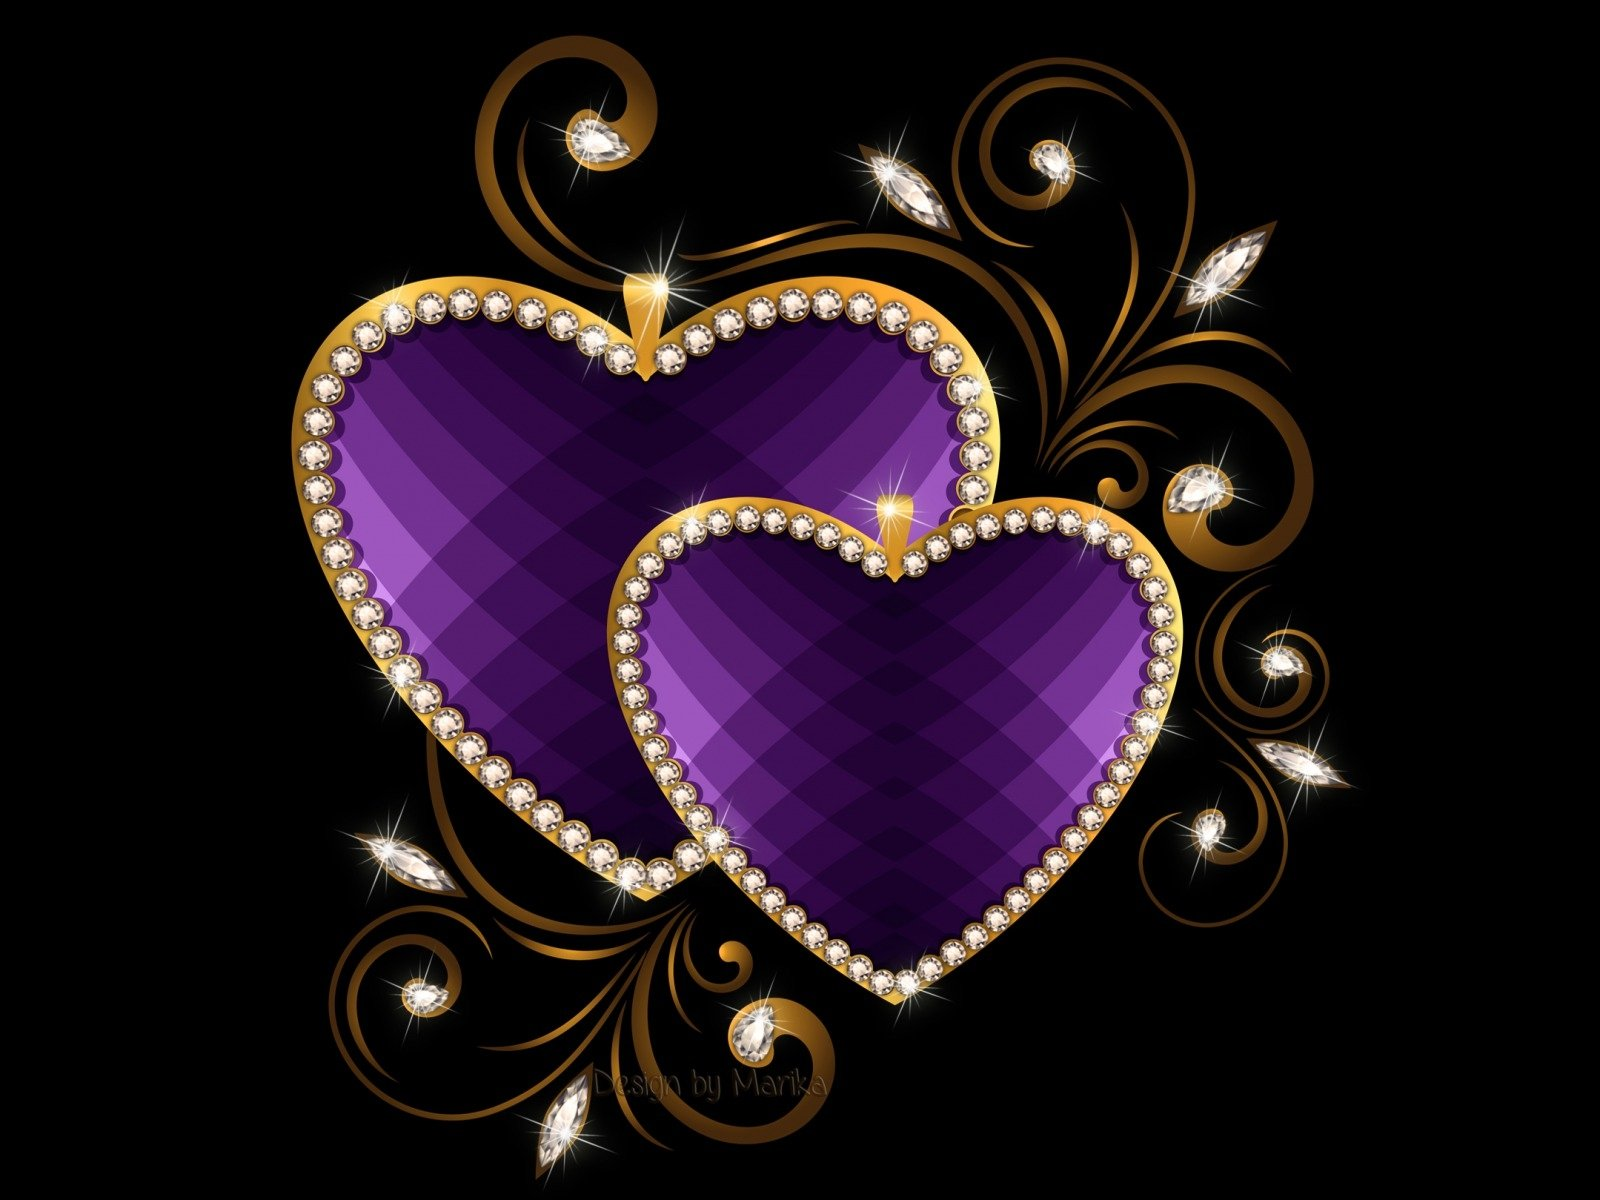 Purple And Black Hearts Wallpaper: Purple Hearts Wallpaper And Background Image